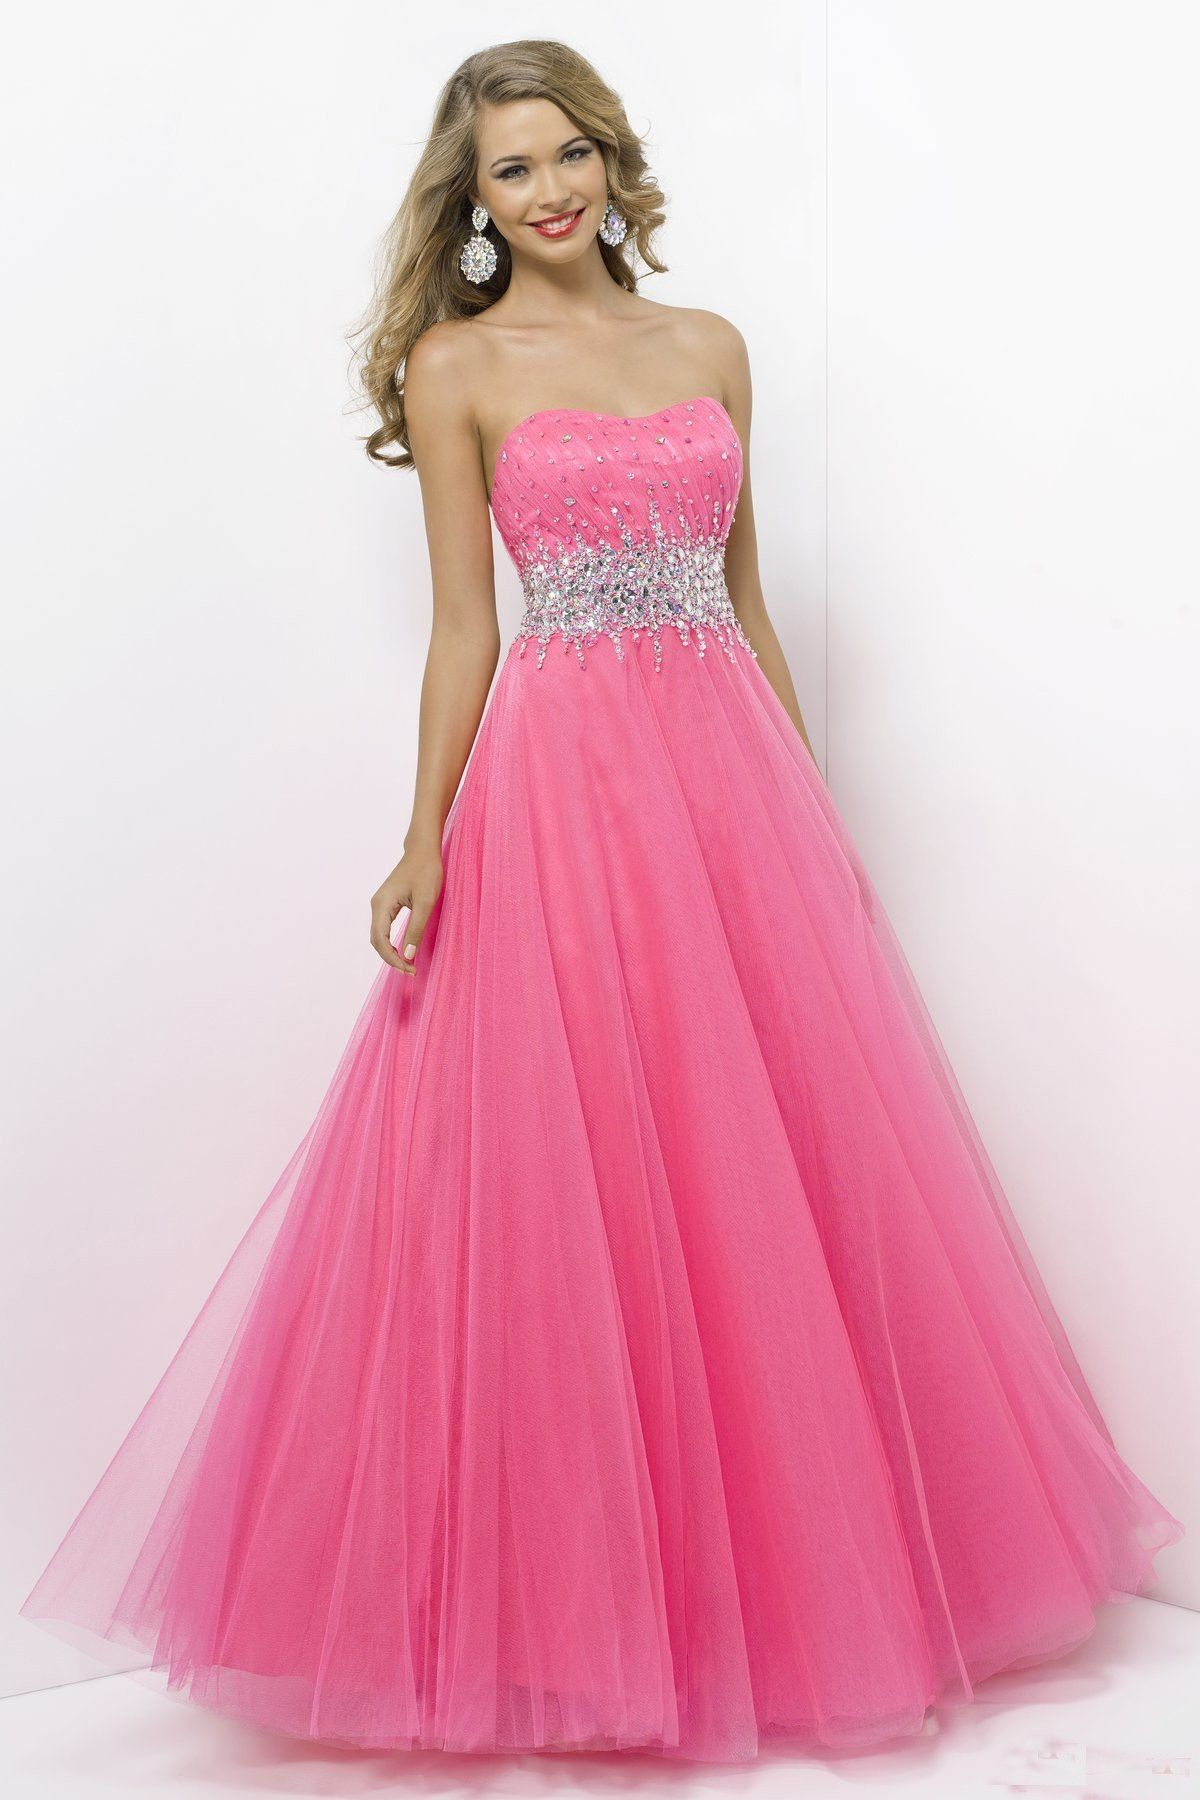 prom dresses prom dresses for teens prom dresses long 2014 strapless ball  gown tulle beaded floor-length prom dress hopes dress 6500241dda5a